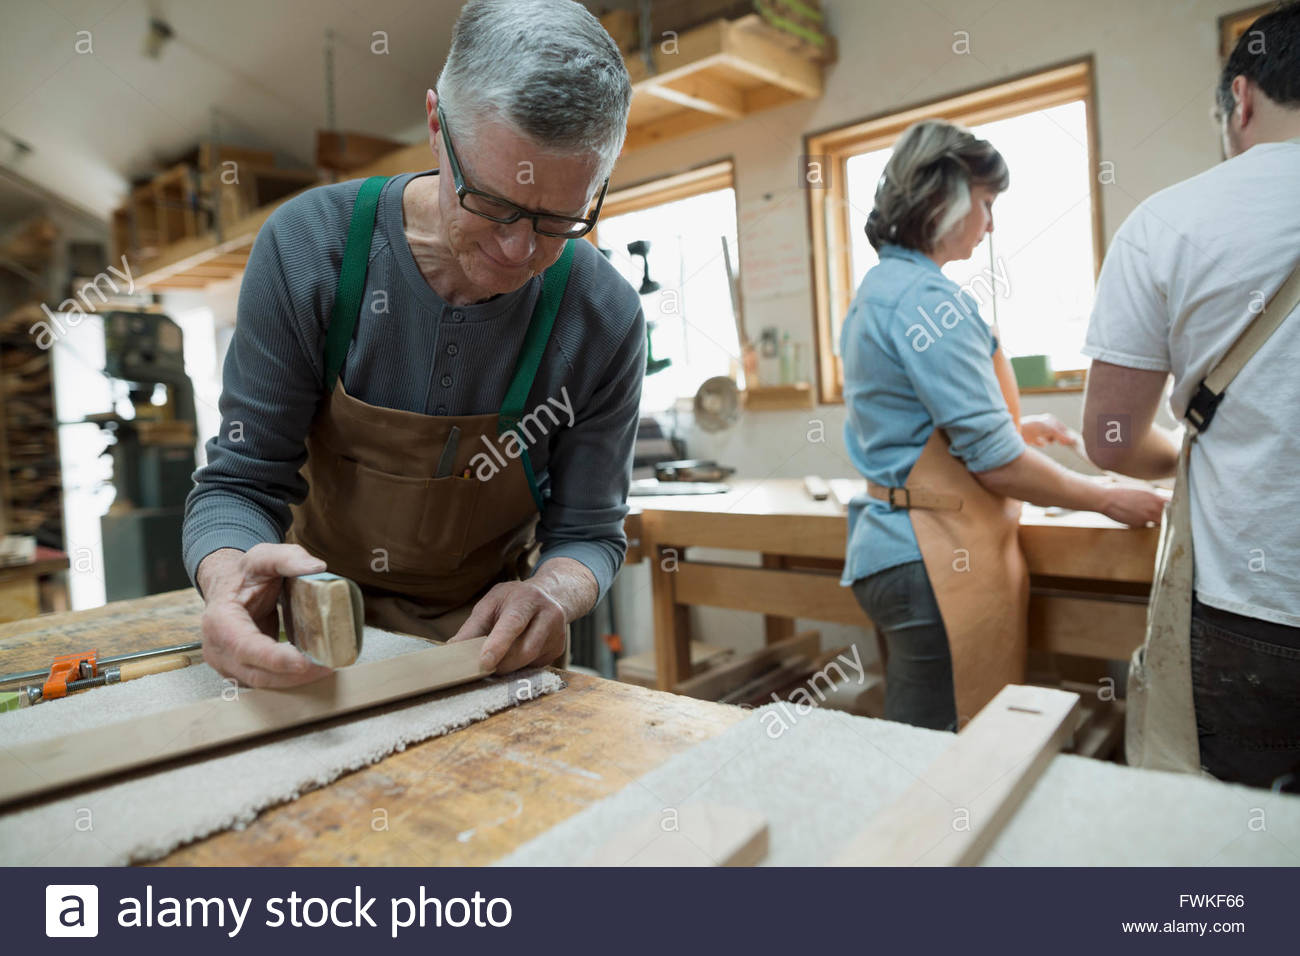 Carpenter examining wood pieces in workshop - Stock Image